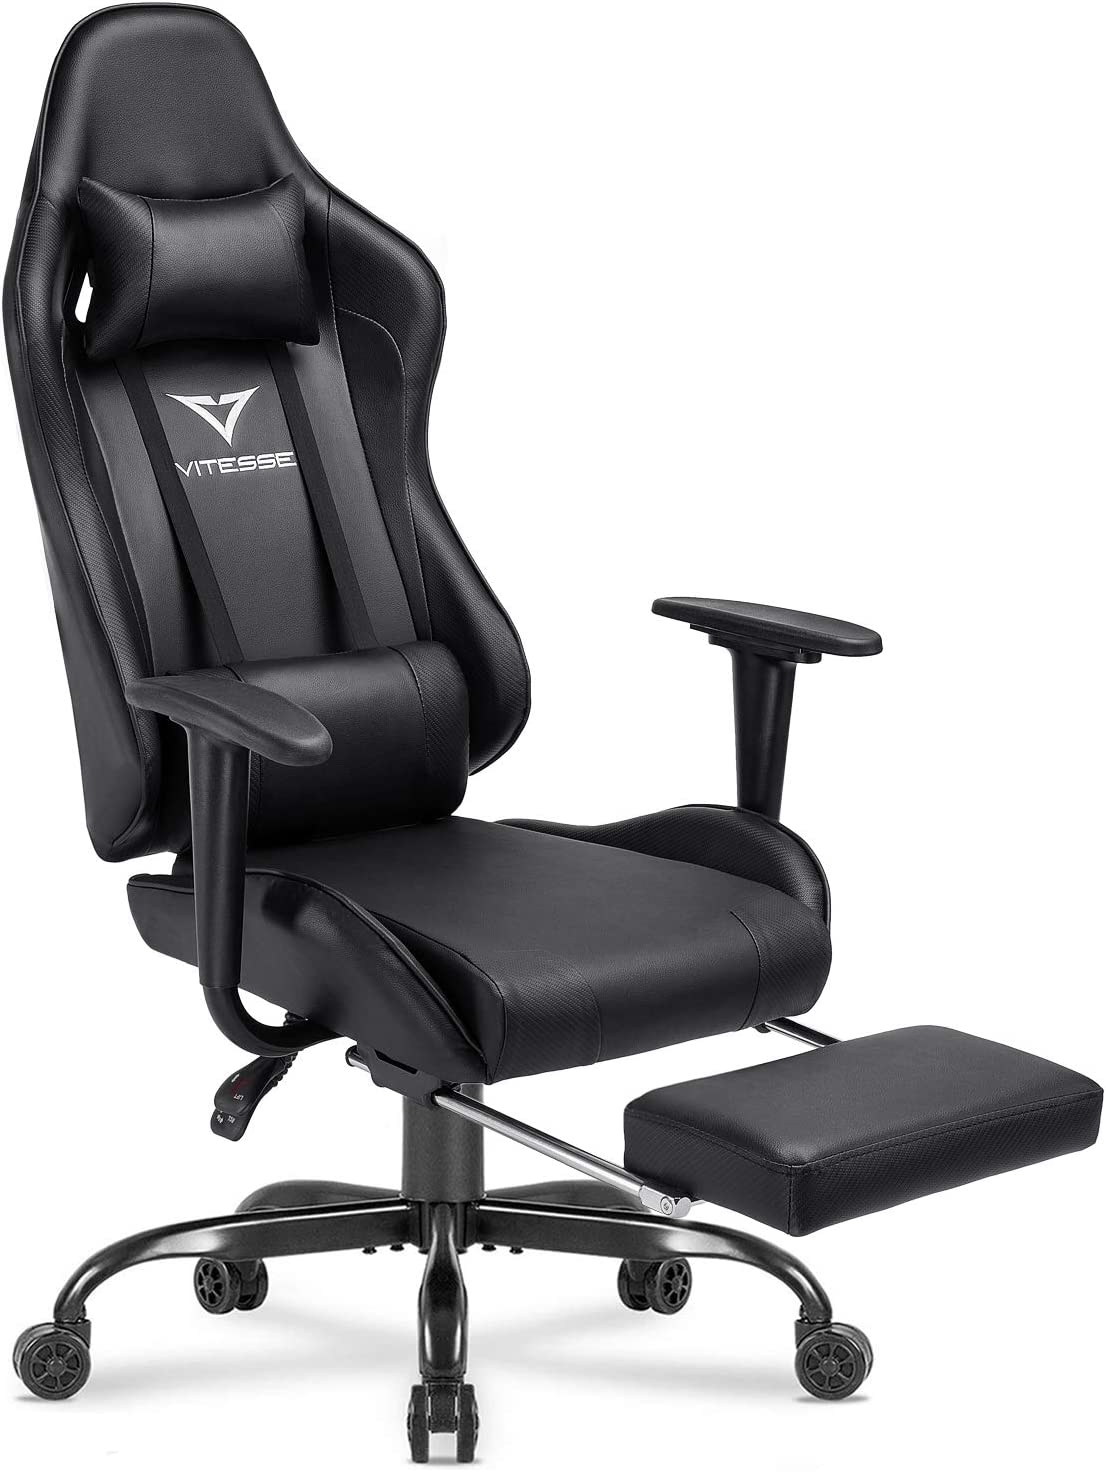 Amazon Com Vitesse Gaming Chair With Footrest Racing Style Computer Office Chair Adjustable Swivel Ergonomic Pc Desk Bucket Seat Chair With Lumbar Support And Headrest Black 1 Kitchen Dining